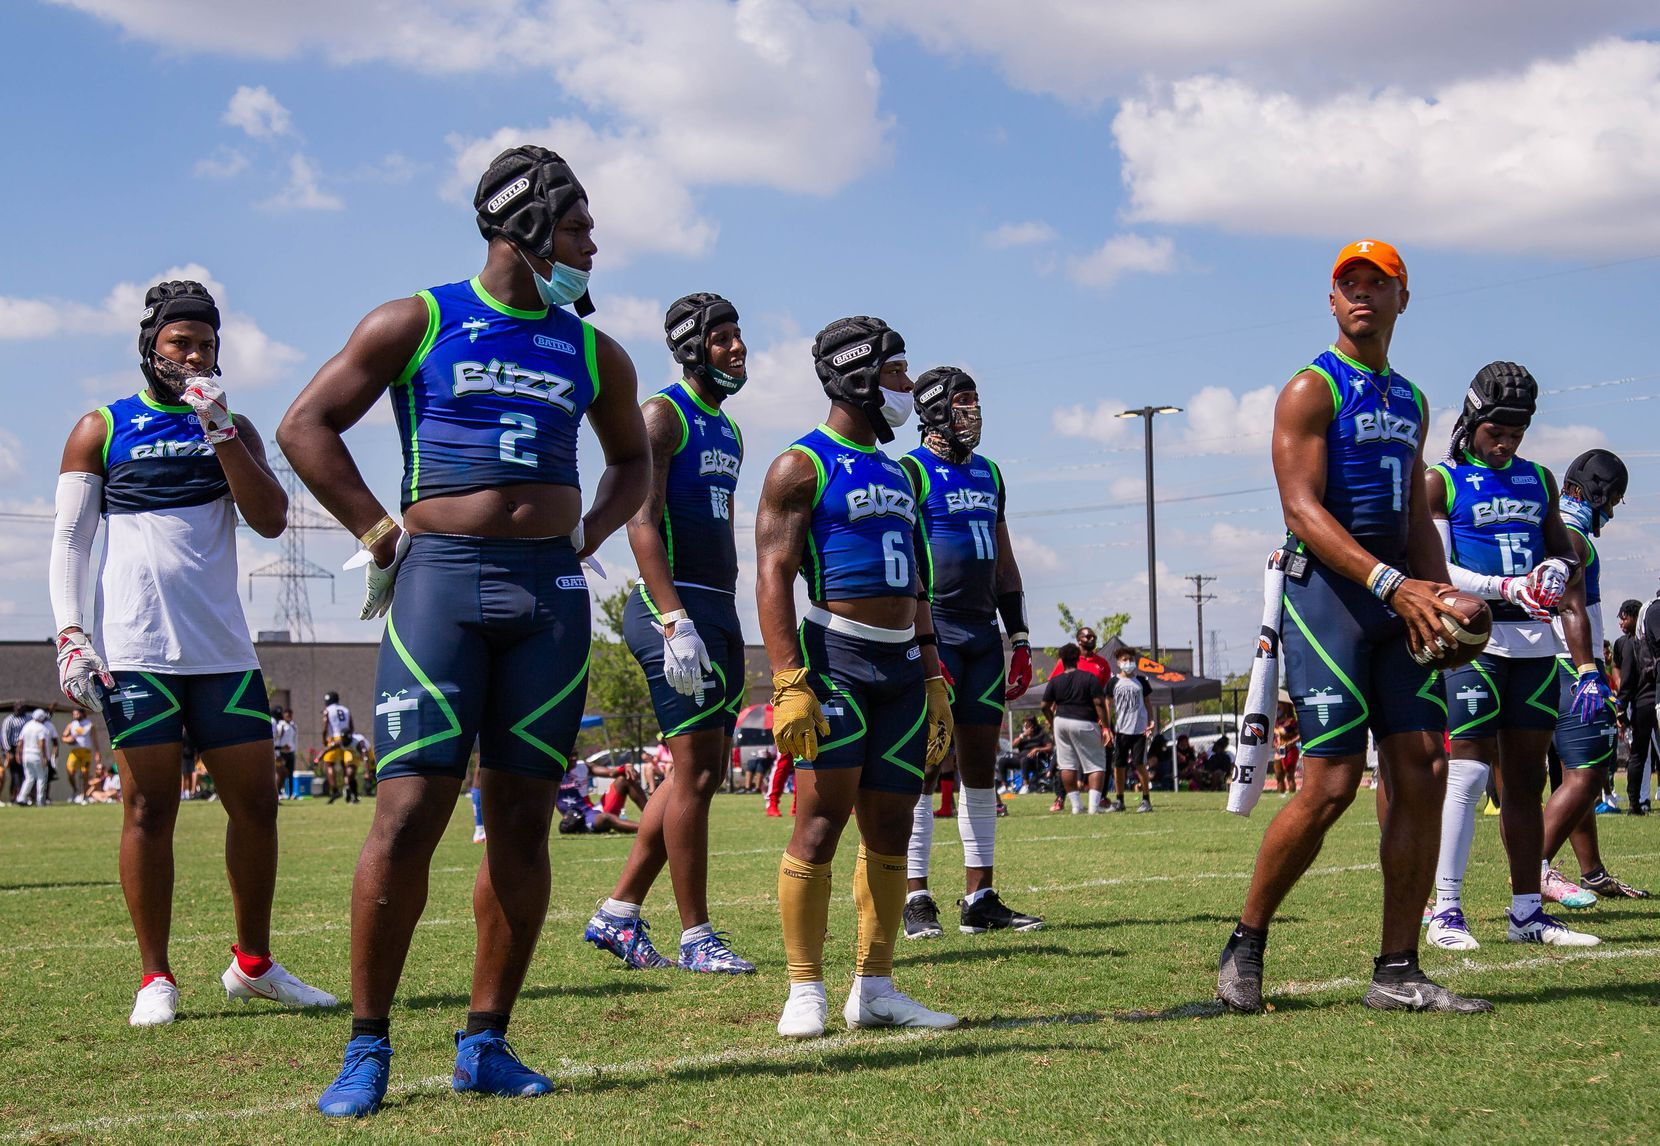 The offense team for Buzz Gang waits to play against Team Grind Red during the Pylon 7-on-7 tournament at the A+D1 field on Aug. 1, 2020 in Carrollton. Grind tied against Buzz, 14-14.